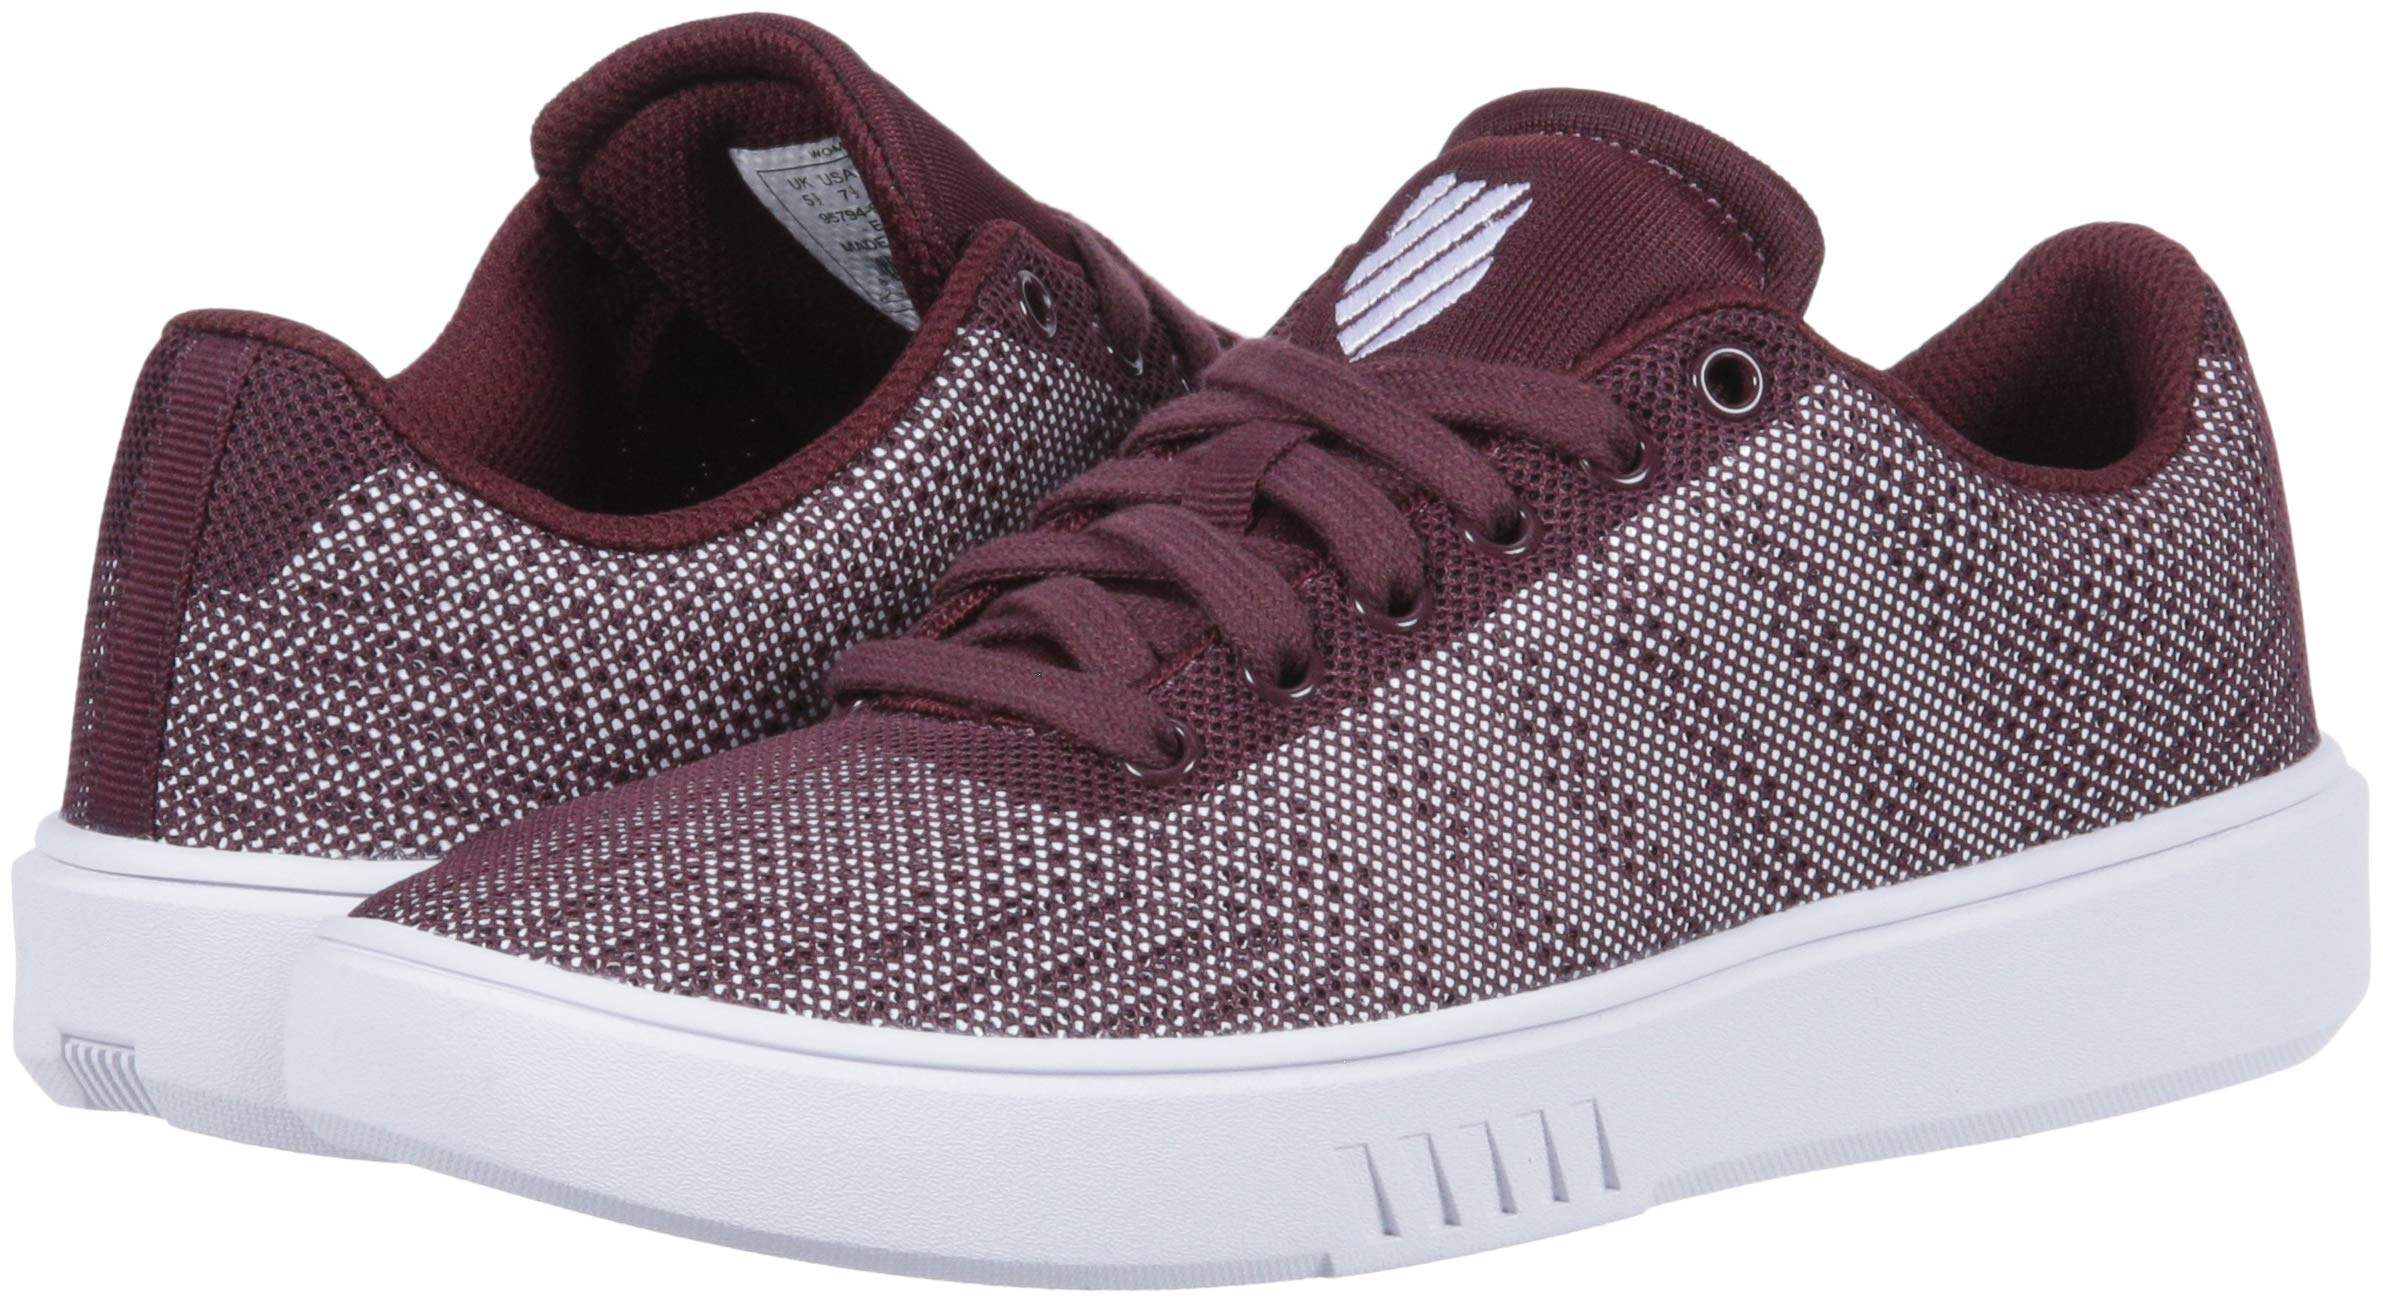 K-Swiss Womens Court Addison Fabric Low Top Lace Up Fashion Sneakers